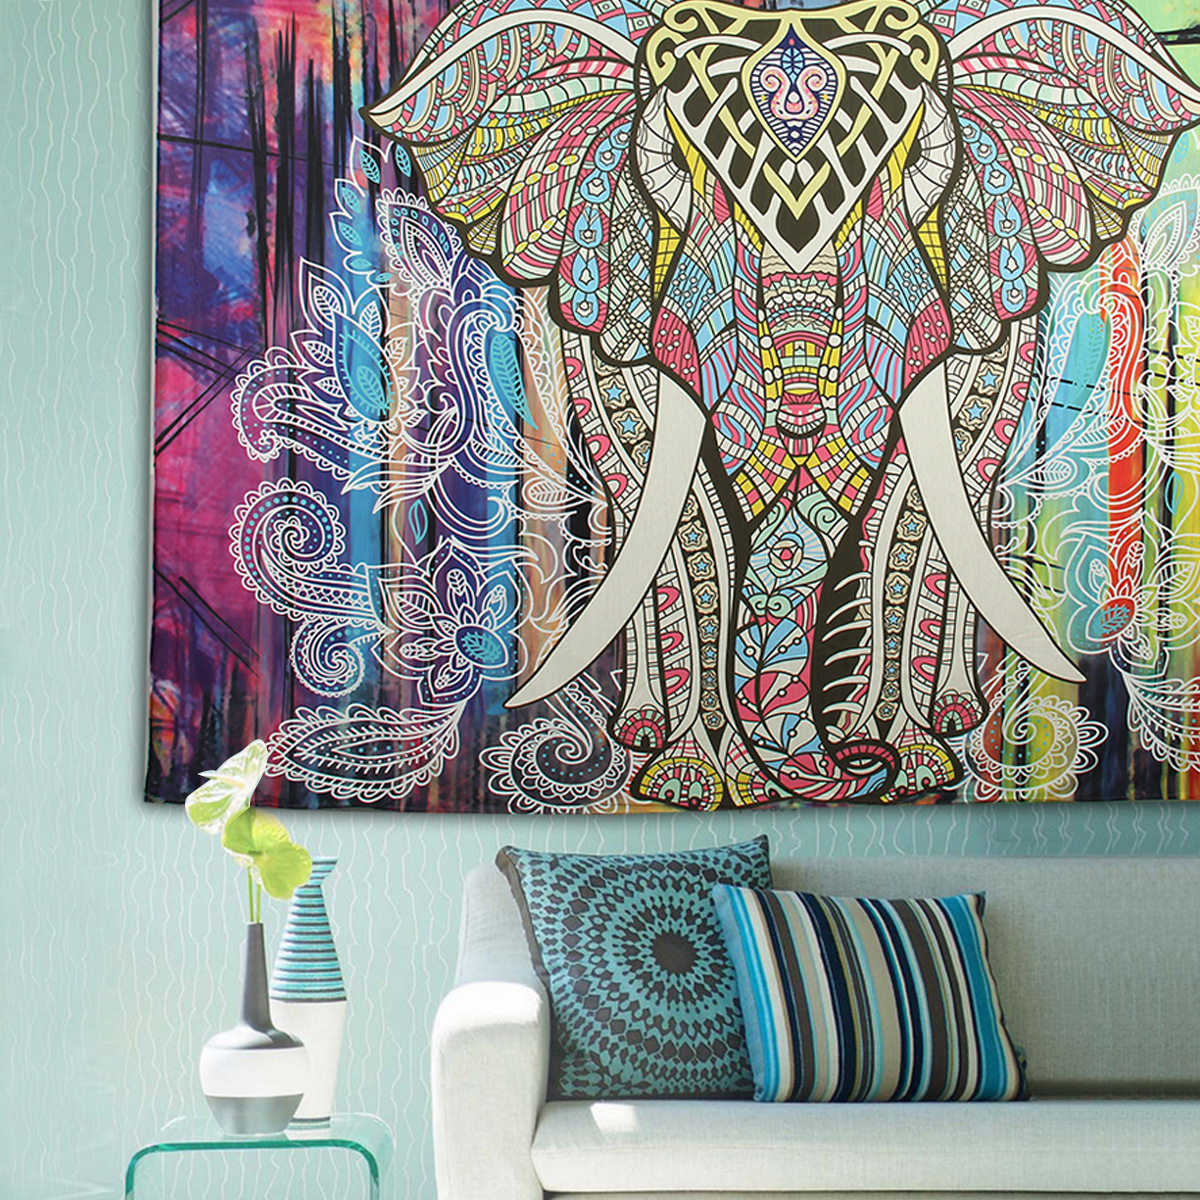 Elephant Mandala Tapestry Throw Towel Hippie Tapestry Floral Printed Home Decor Wall Tapestries Bedspread 210*150CM 14